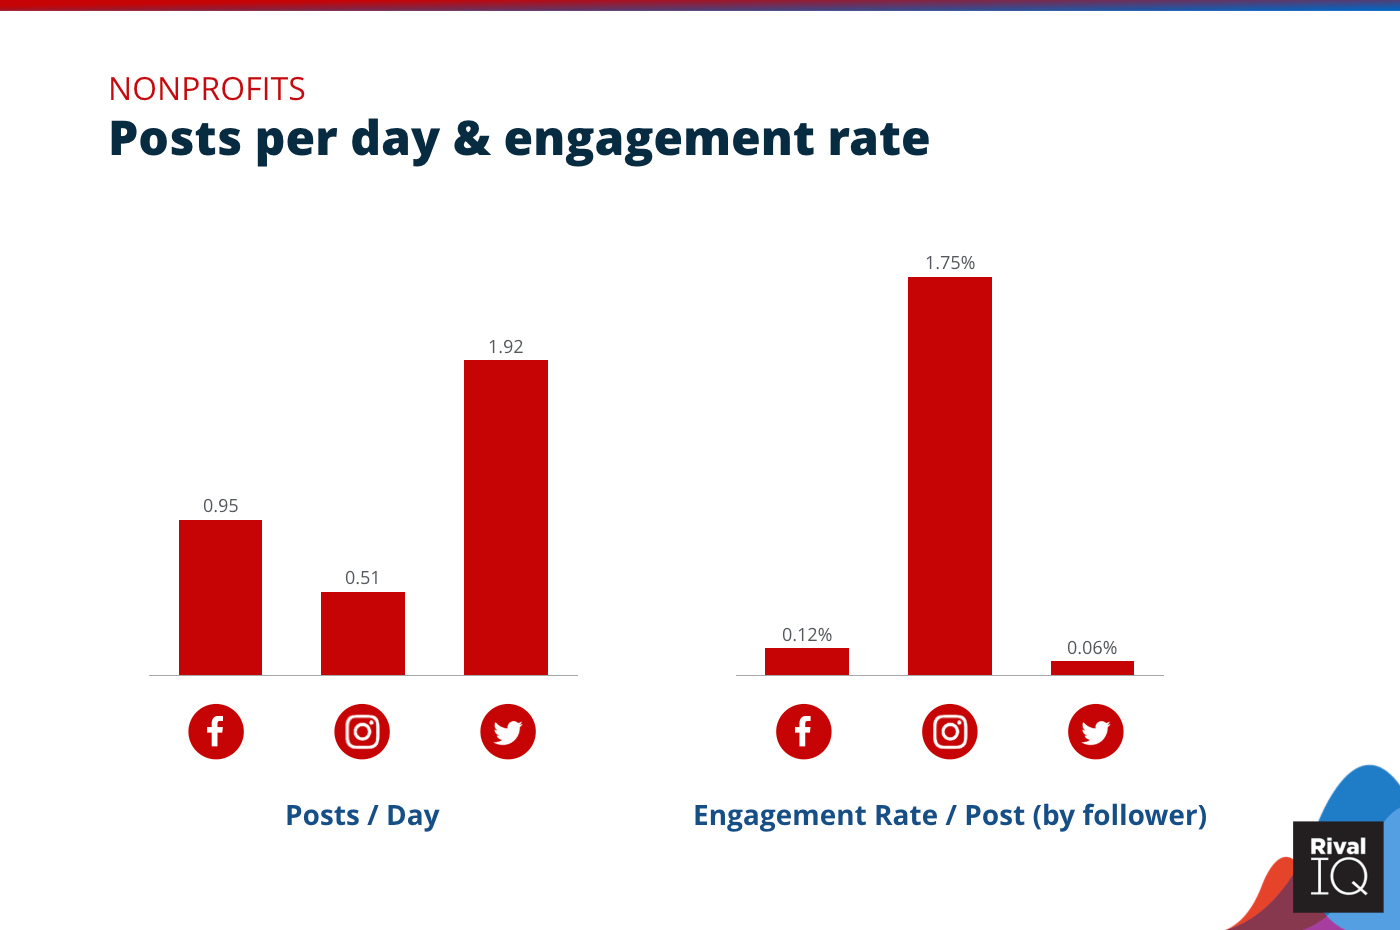 Chart of Posts per day and engagement rate per post across all channels, Nonprofits